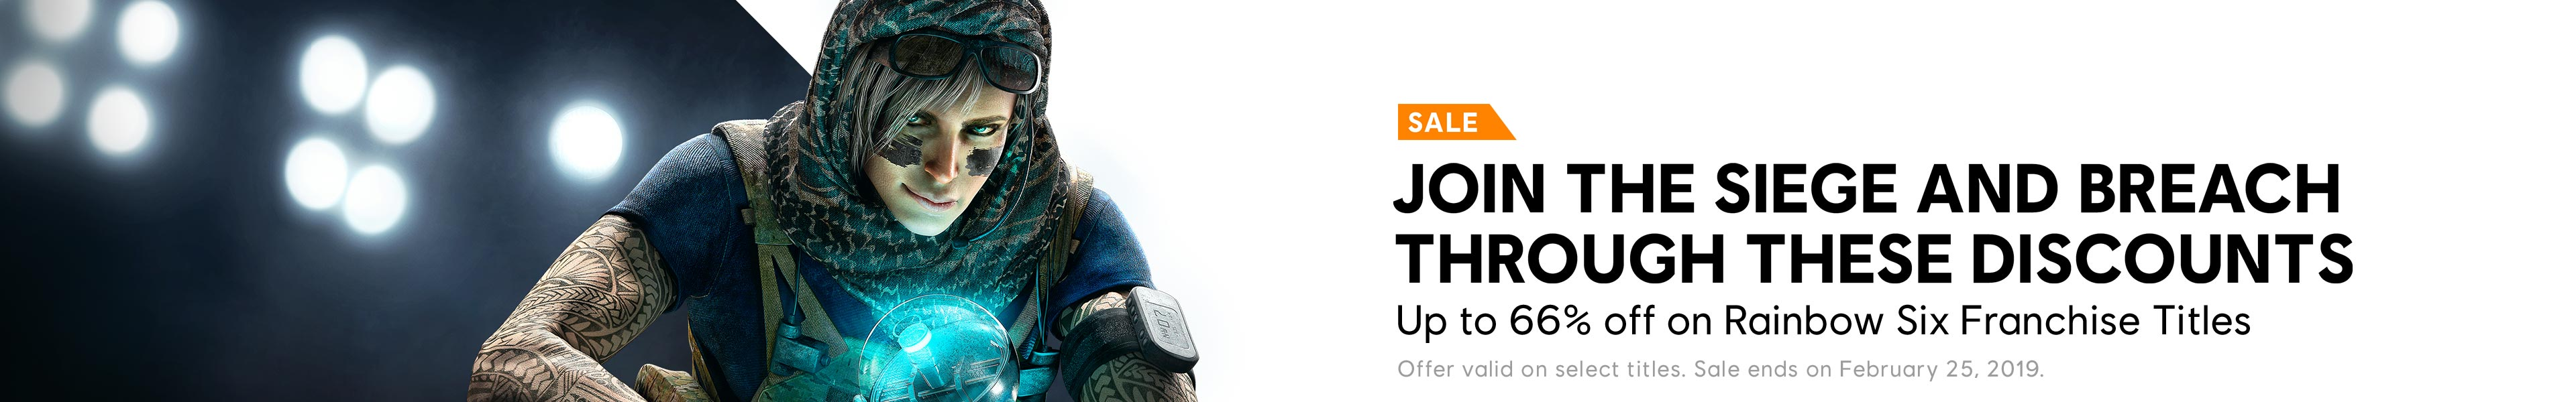 R6S Sale Category banner